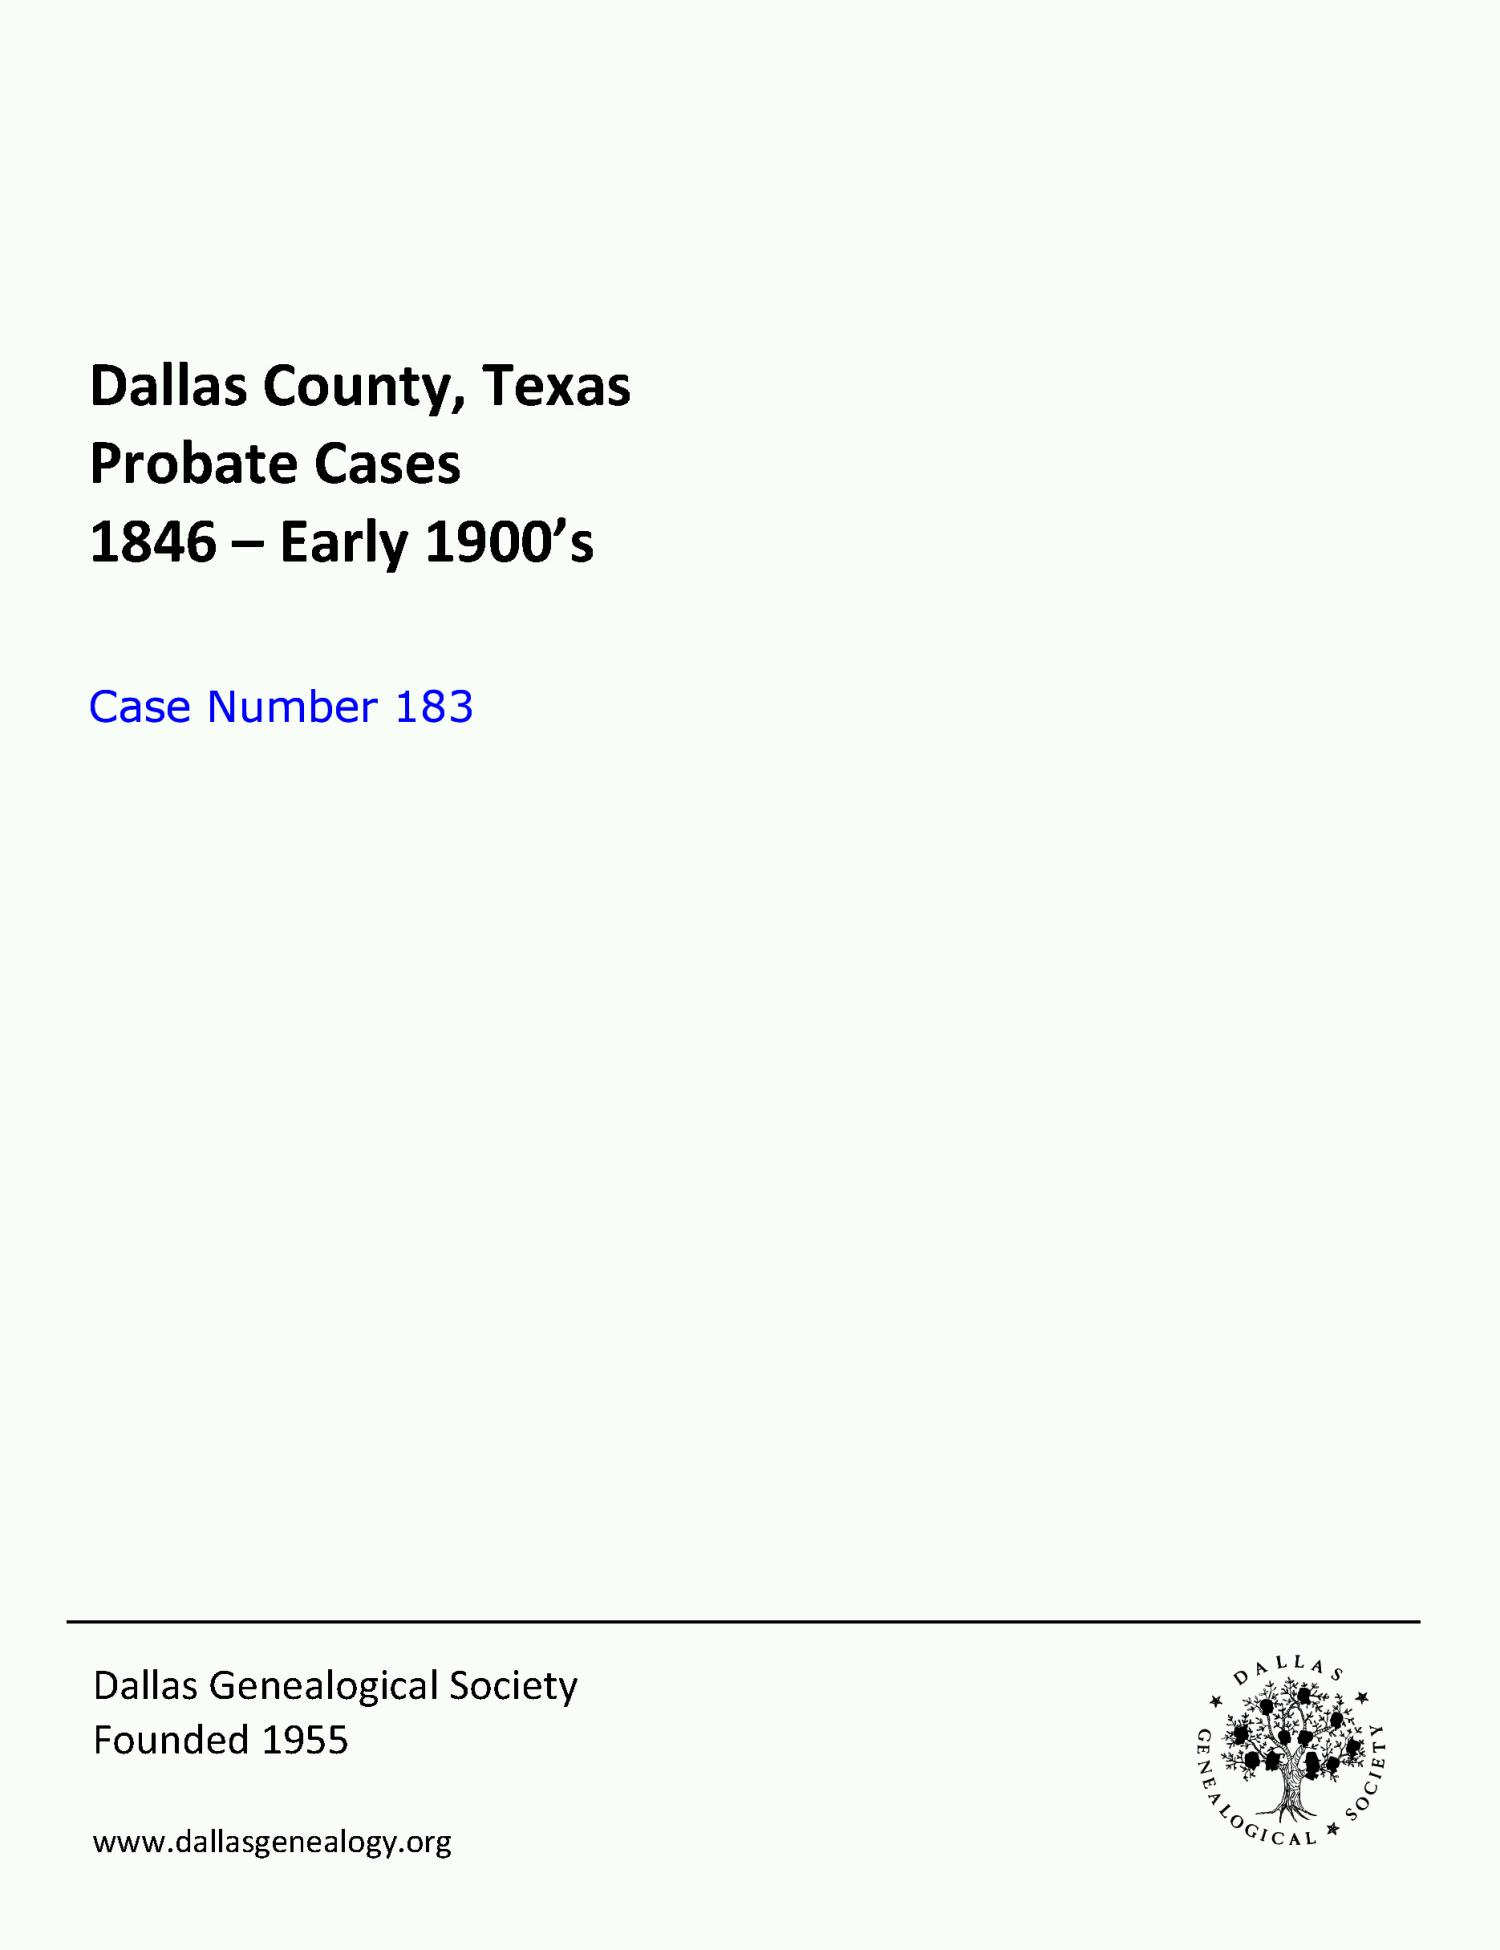 Dallas County Probate Case 183: Freeman, S.E. (Minor)                                                                                                      [Sequence #]: 1 of 6